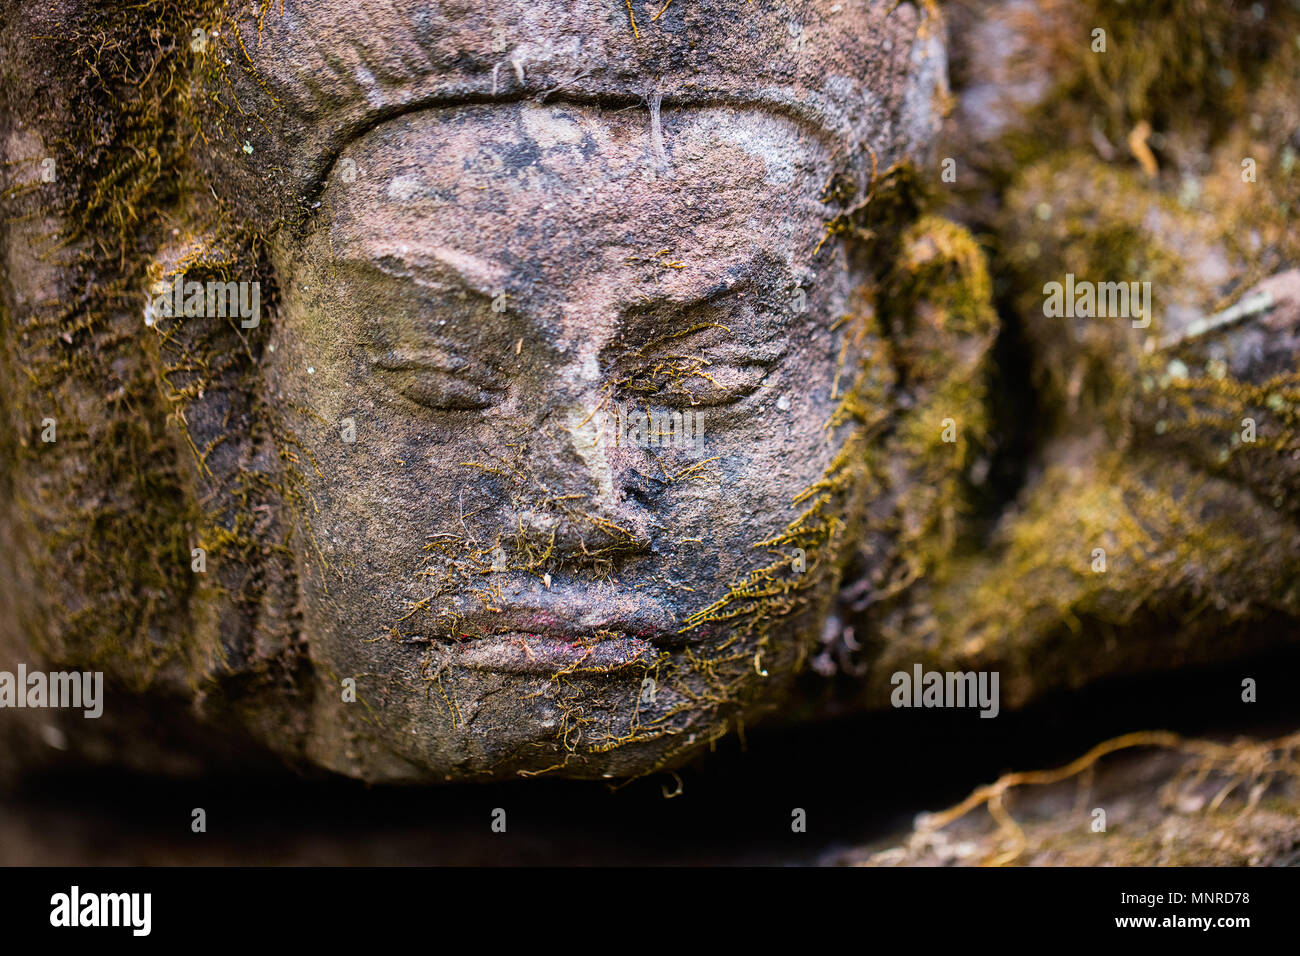 Mossy stone face in Angkor Archaeological area in Cambodia - Stock Image